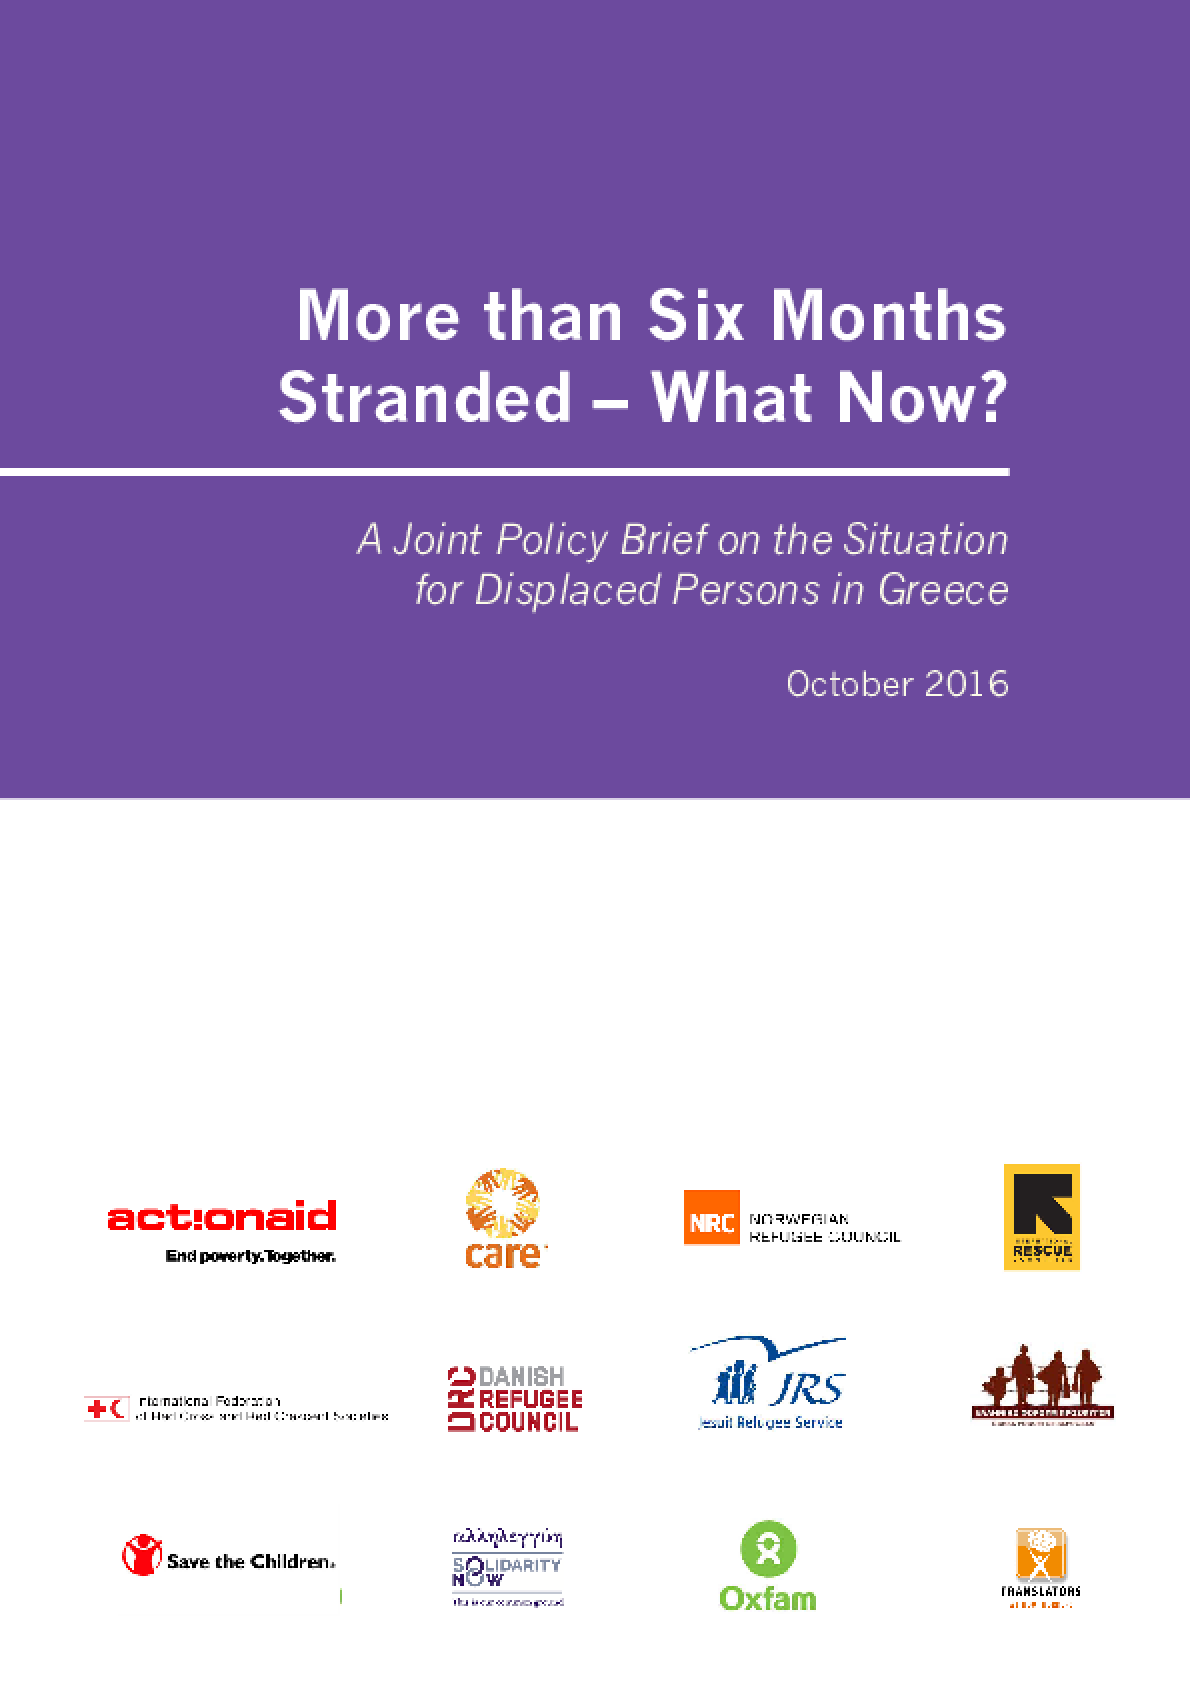 More than Six Months Stranded - What Now? A Joint Policy Brief on the Situation for Displaced Persons in Greece